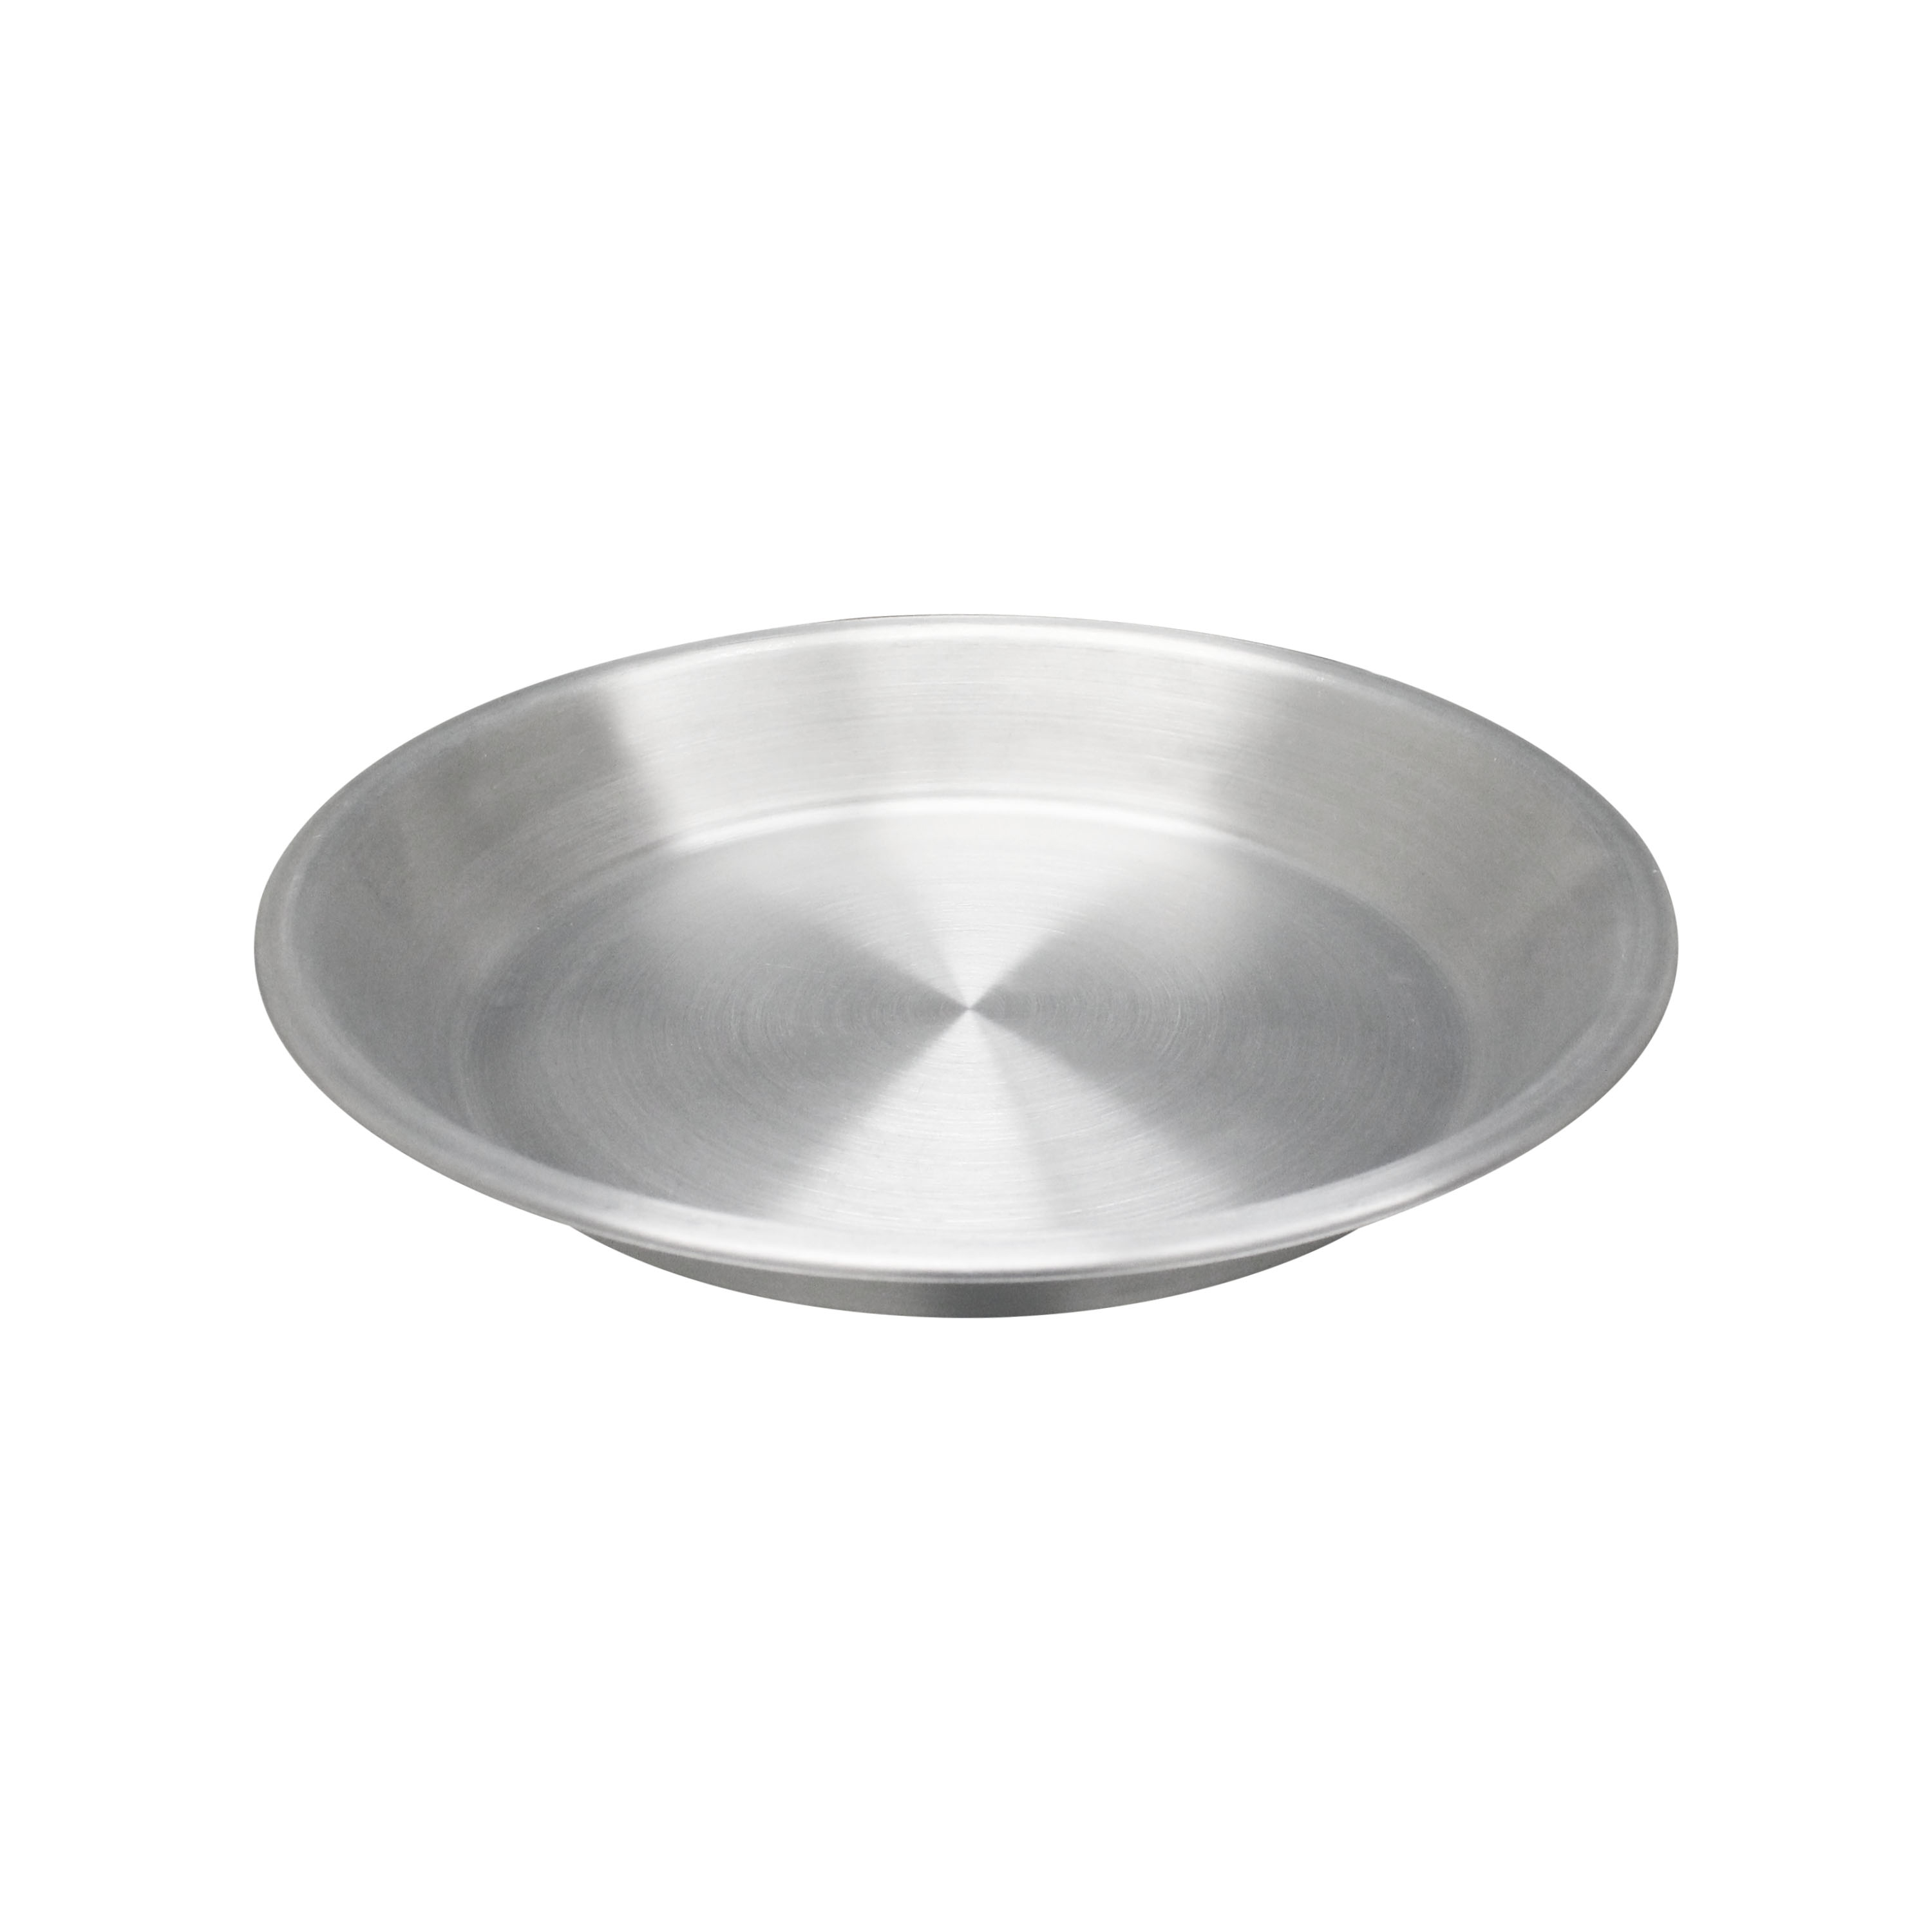 "10"" Pie Pan, Aluminum,1.0 Mm, Comes In Each by Thunder Group"